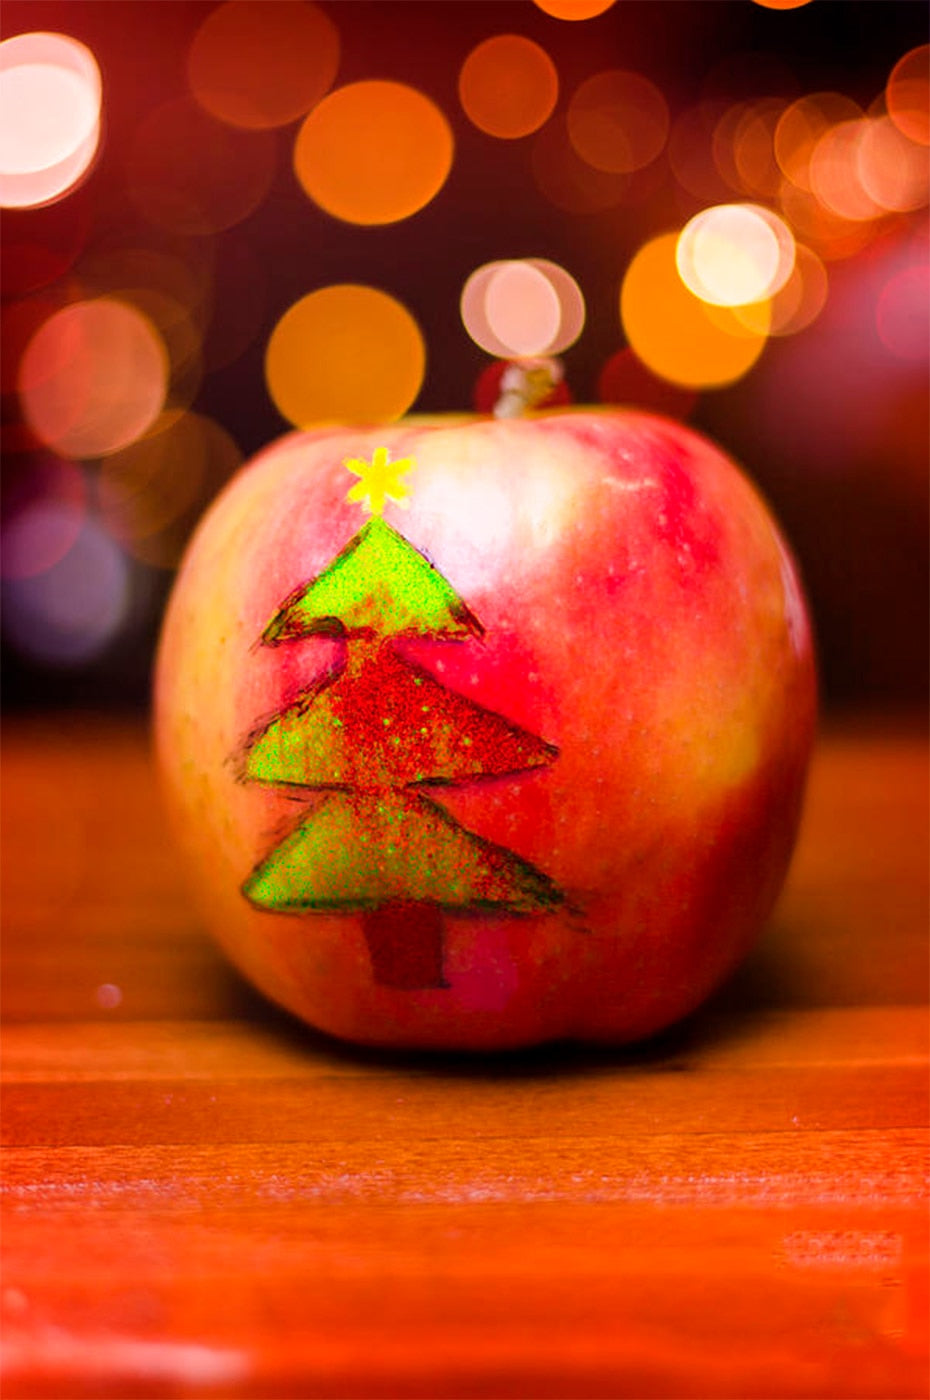 apple with xmas tree